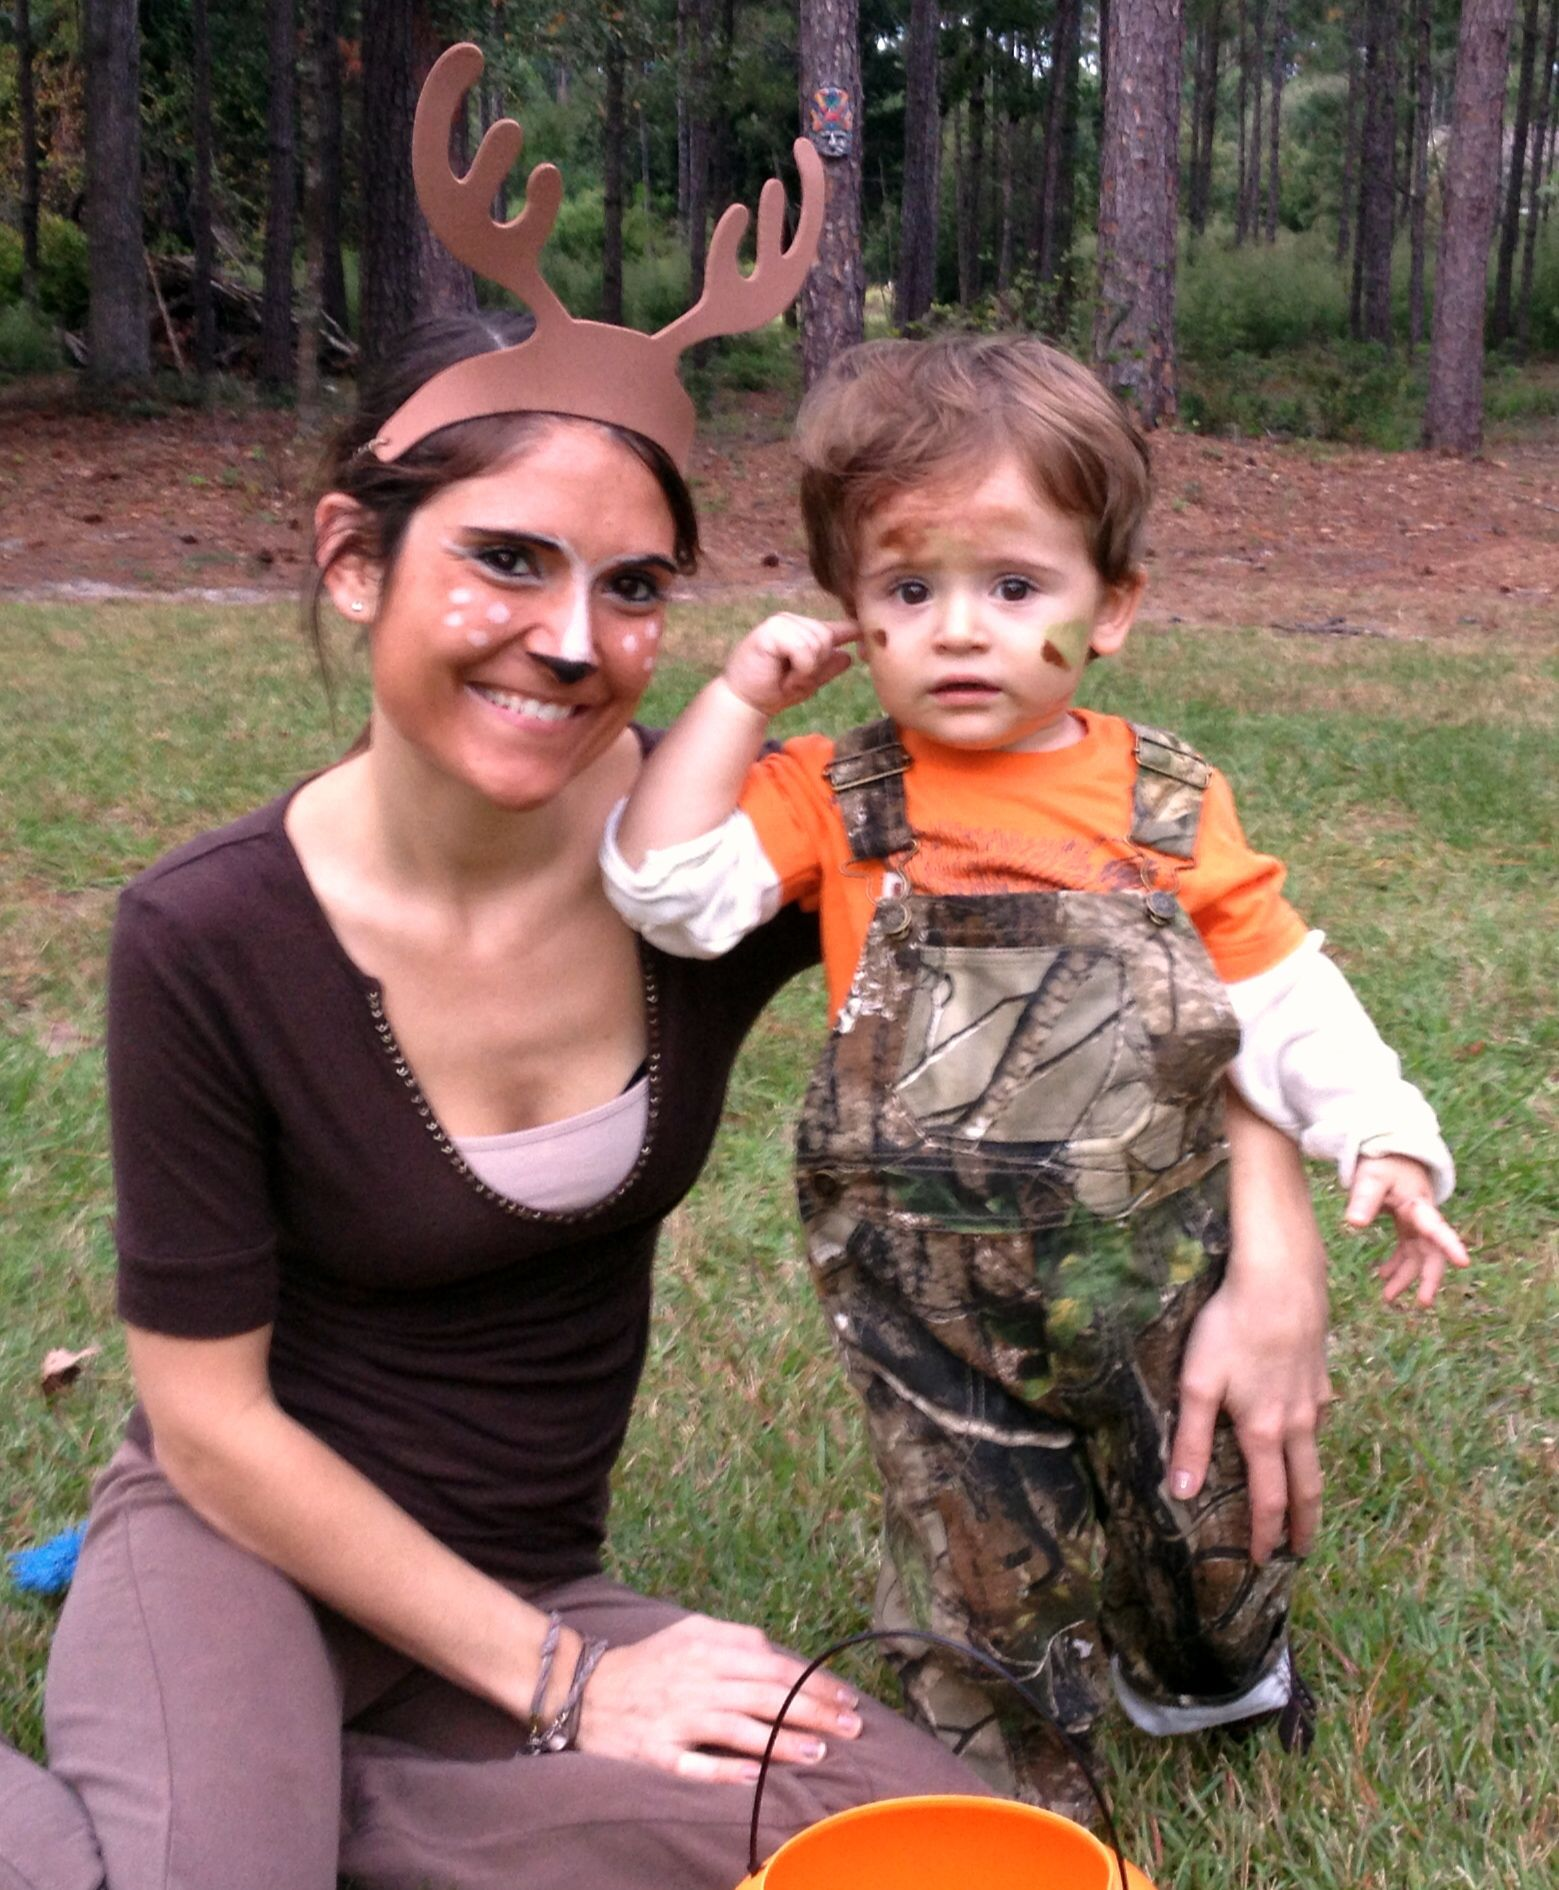 Halloween Costume Mom Older Boy 2020 Hunter and deer Halloween costume for mom and toddler | Mom